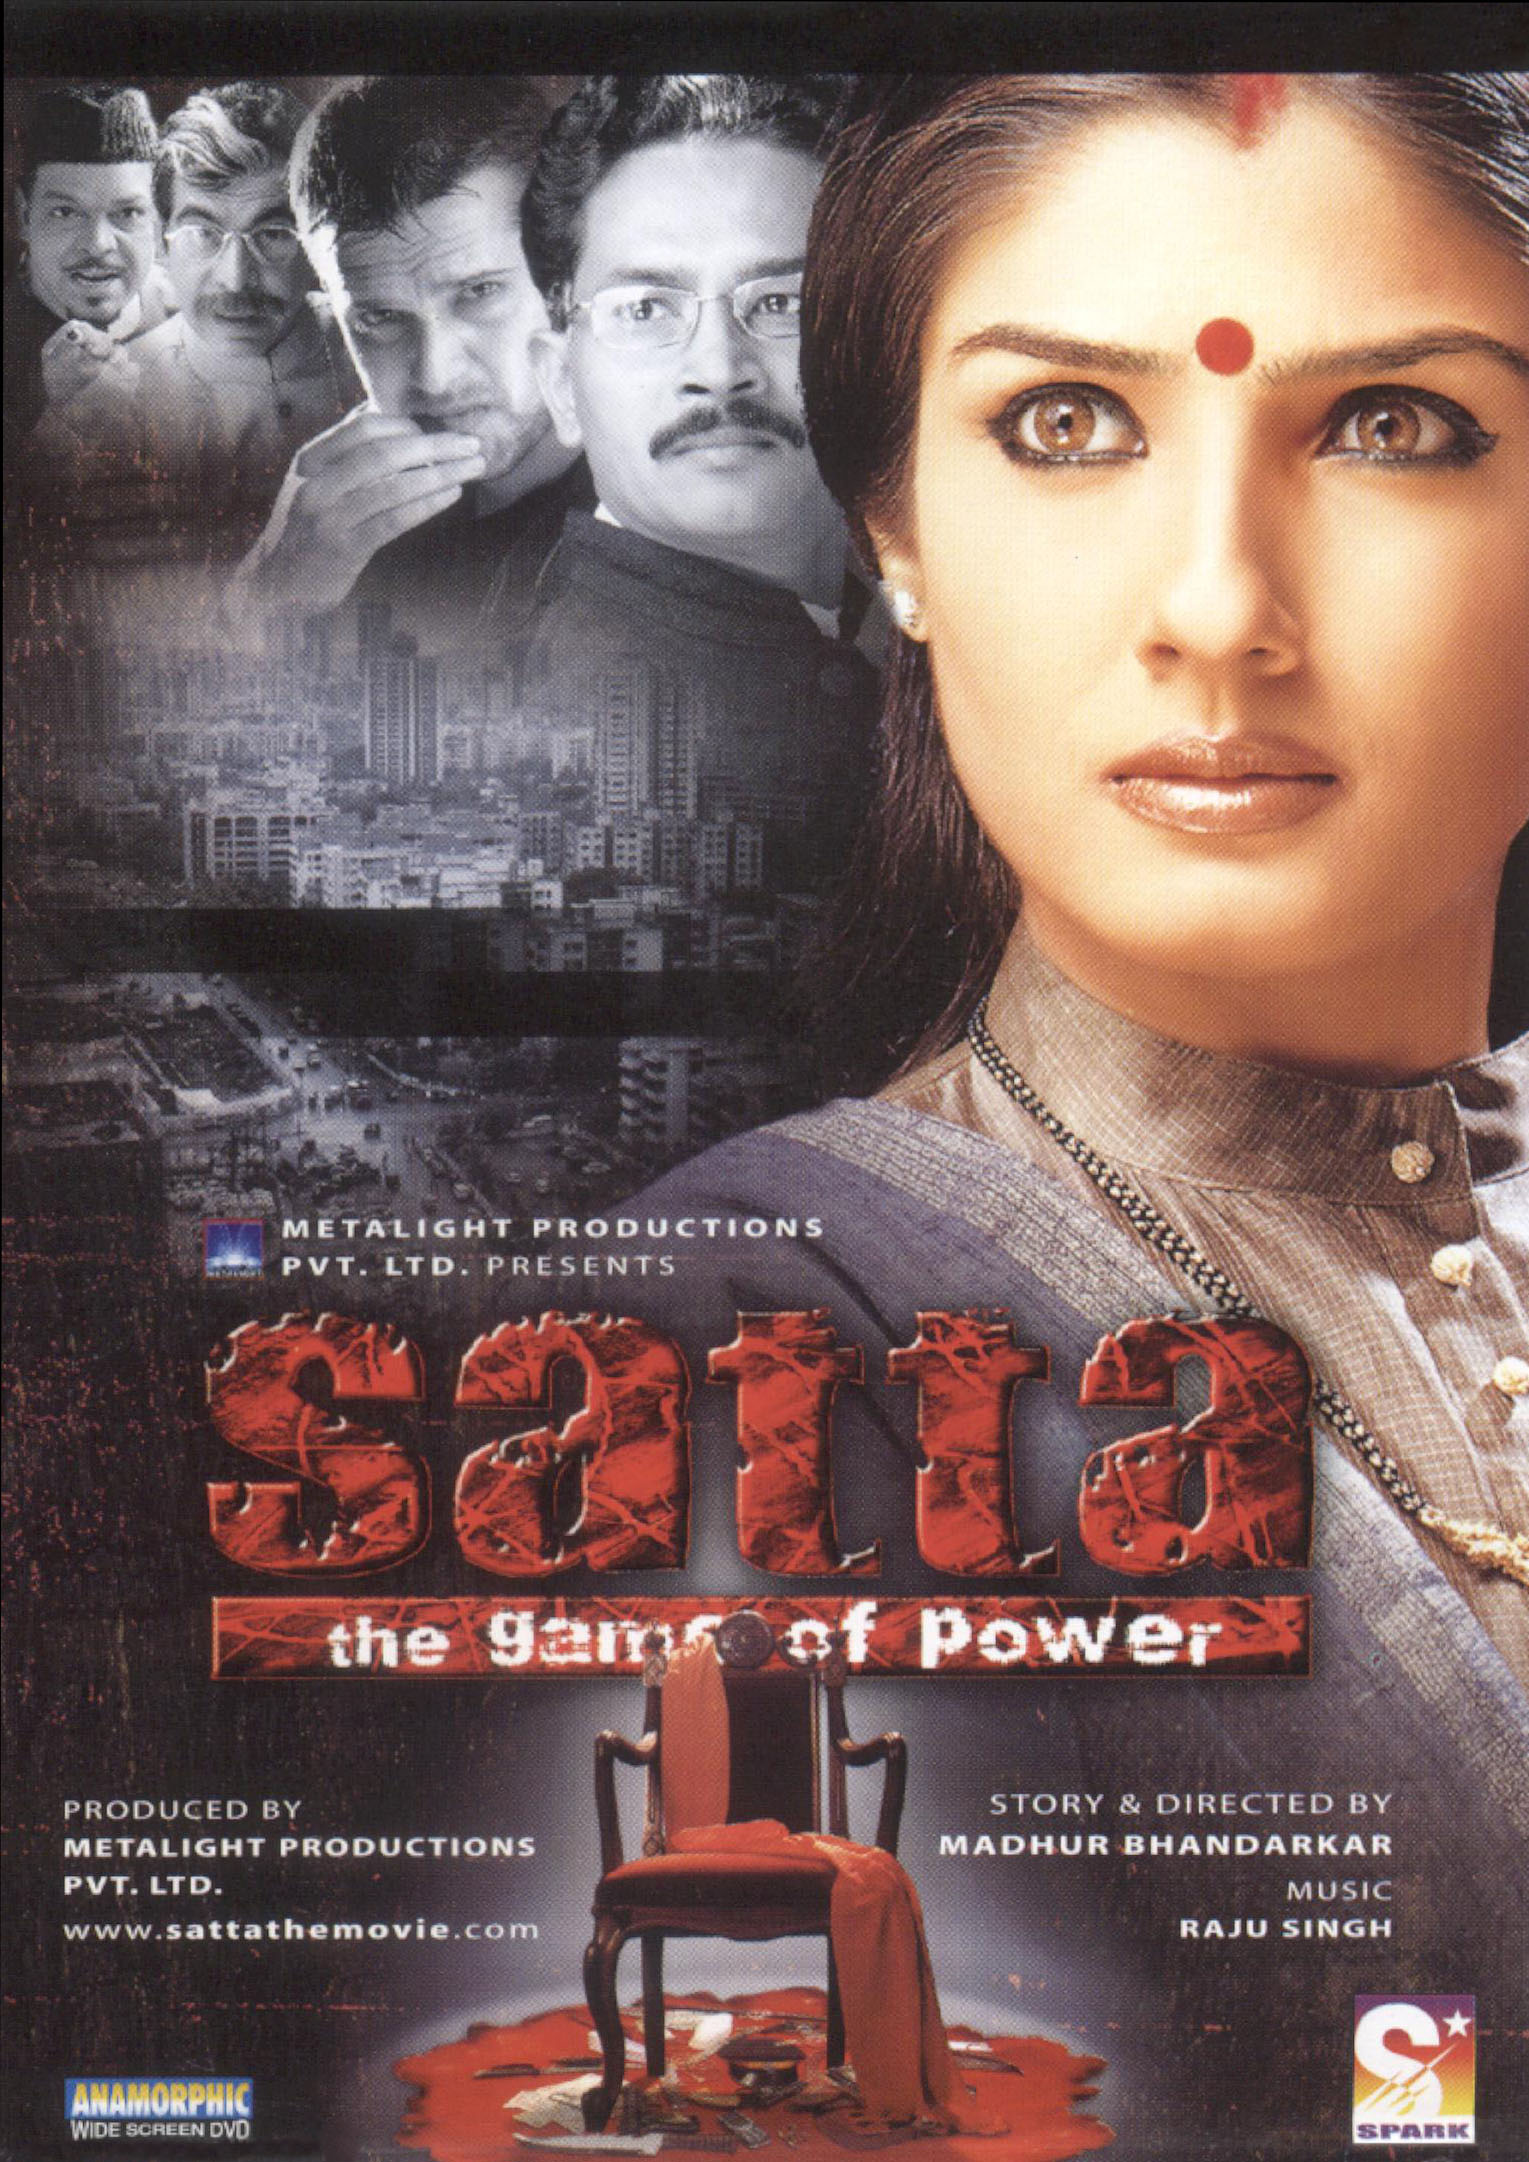 Satta: The Game of Power